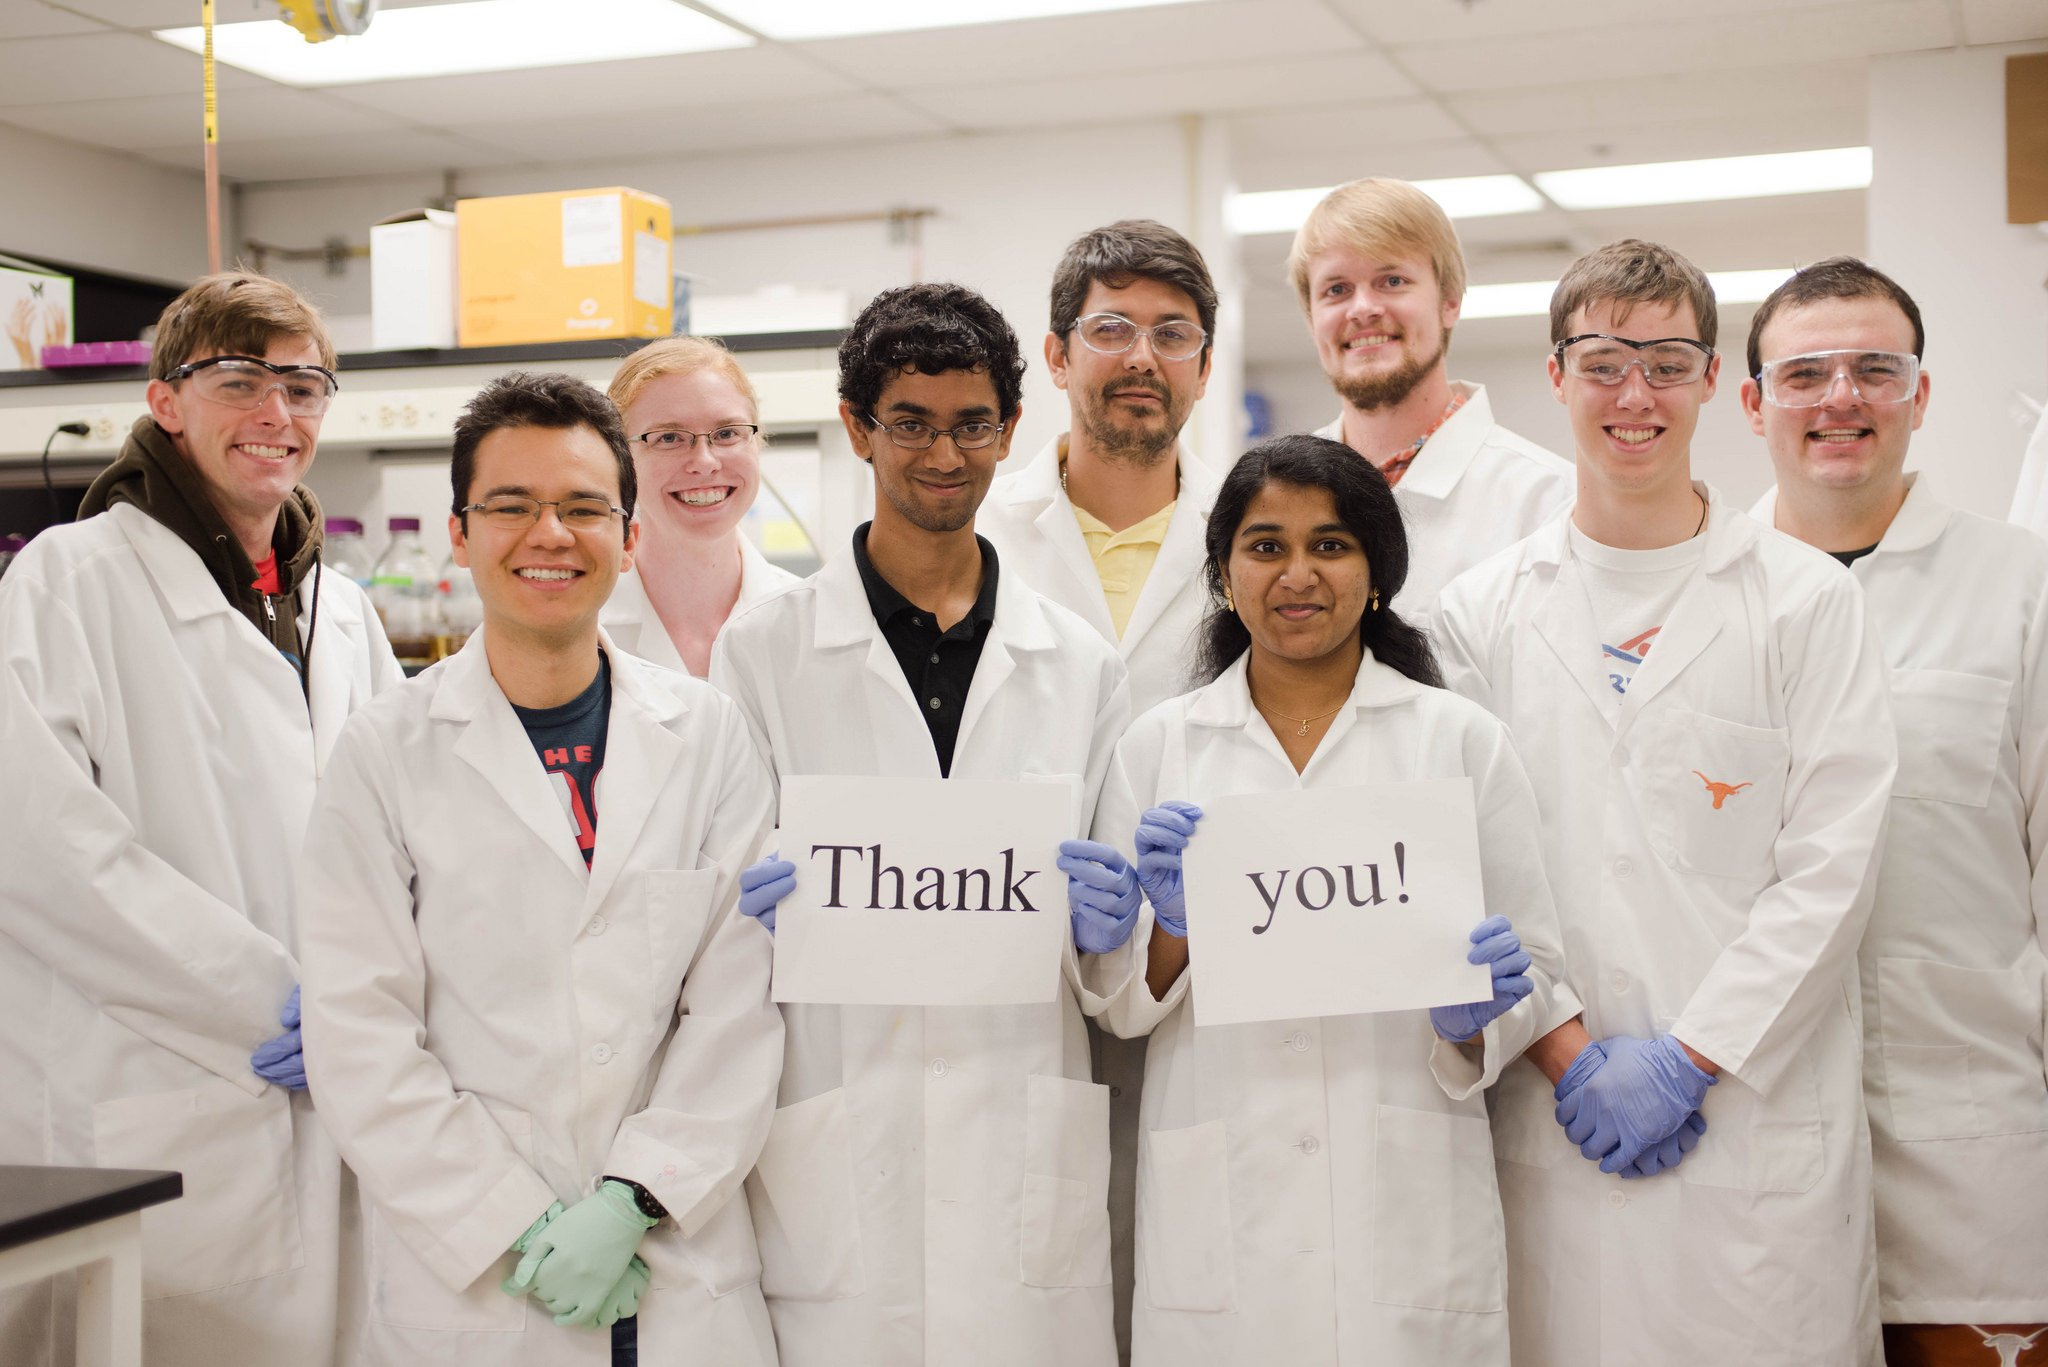 We are so thankful to our dept. donors! Your generosity provides a solid foundation for the chemical engineers of tmrw. Happy #UTThanksDay! https://t.co/Aw4buRbfmJ